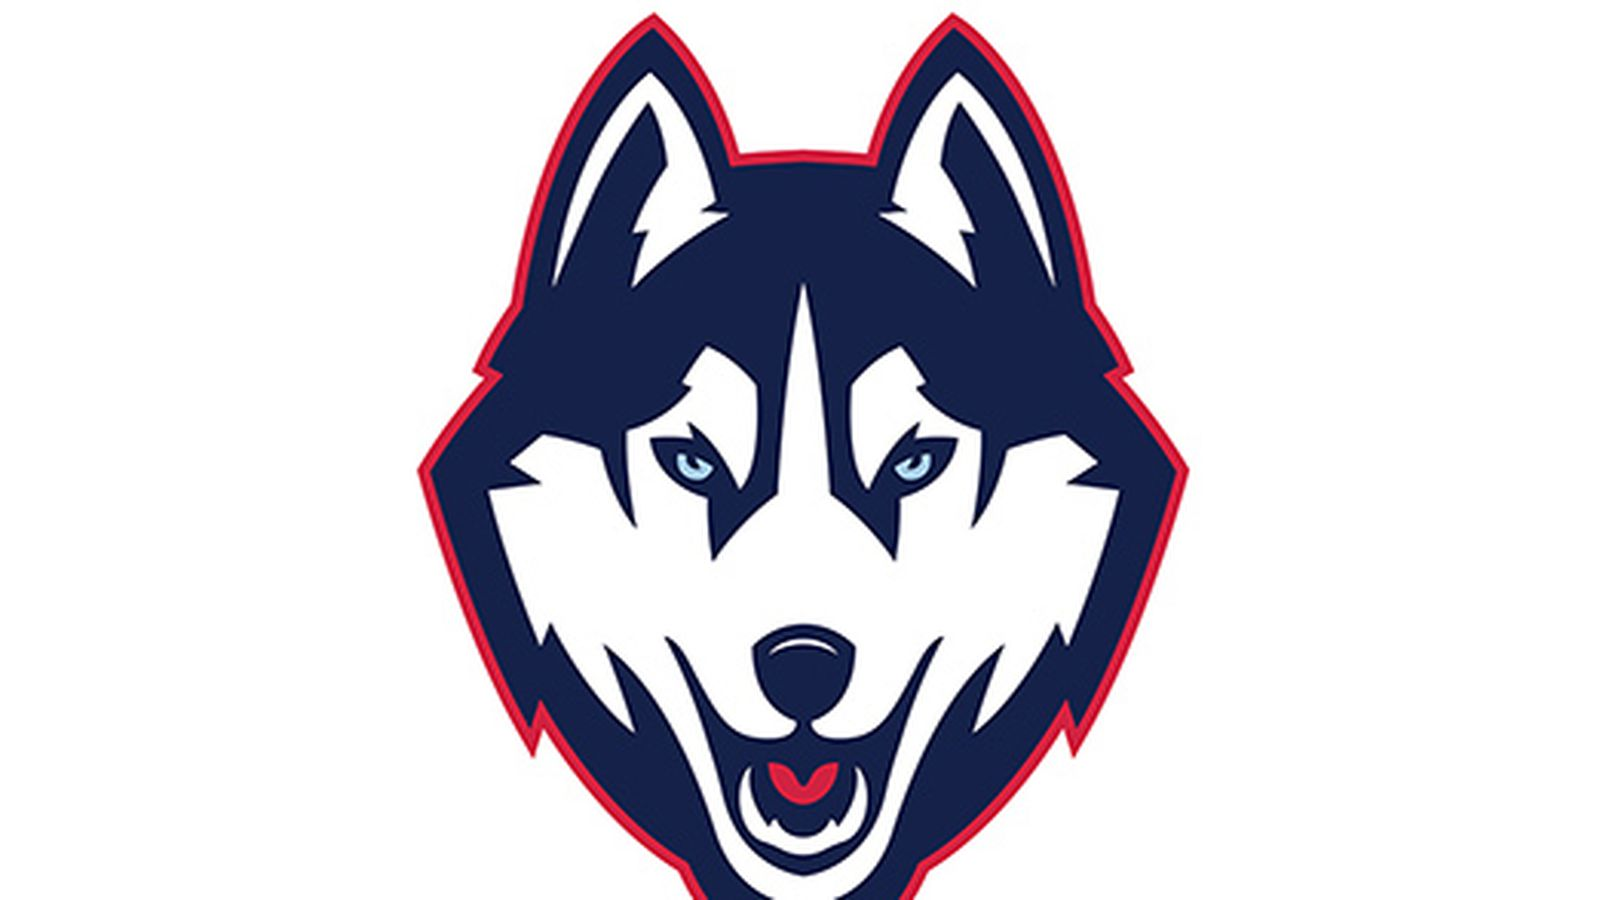 It's official, this is the new UConn logo - The UConn Blog